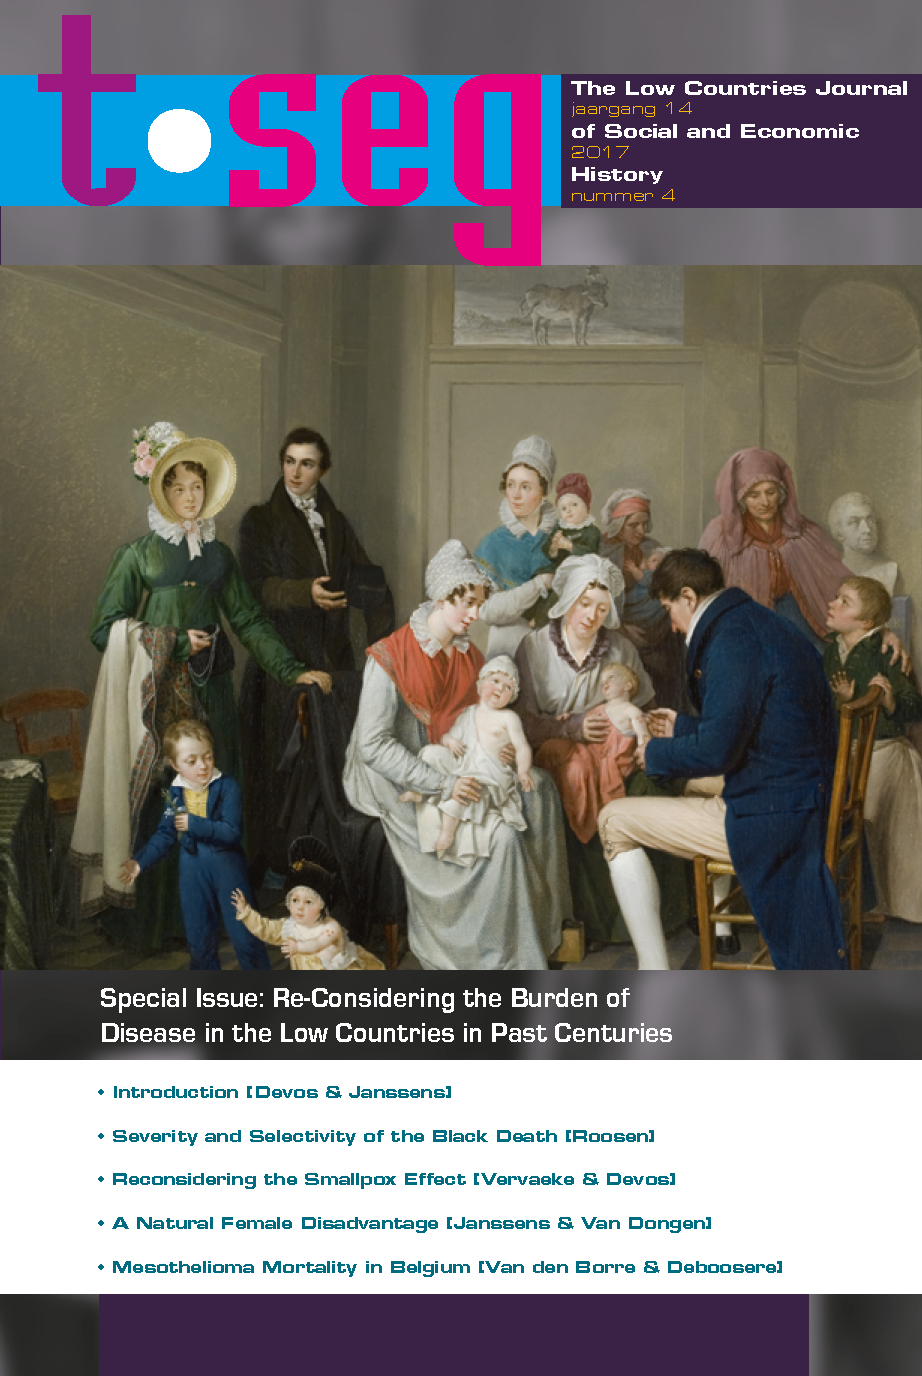 View Vol. 14 No. 4 (2017): Re-Considering the Burden of Disease in the Low Countries in Past Centuries